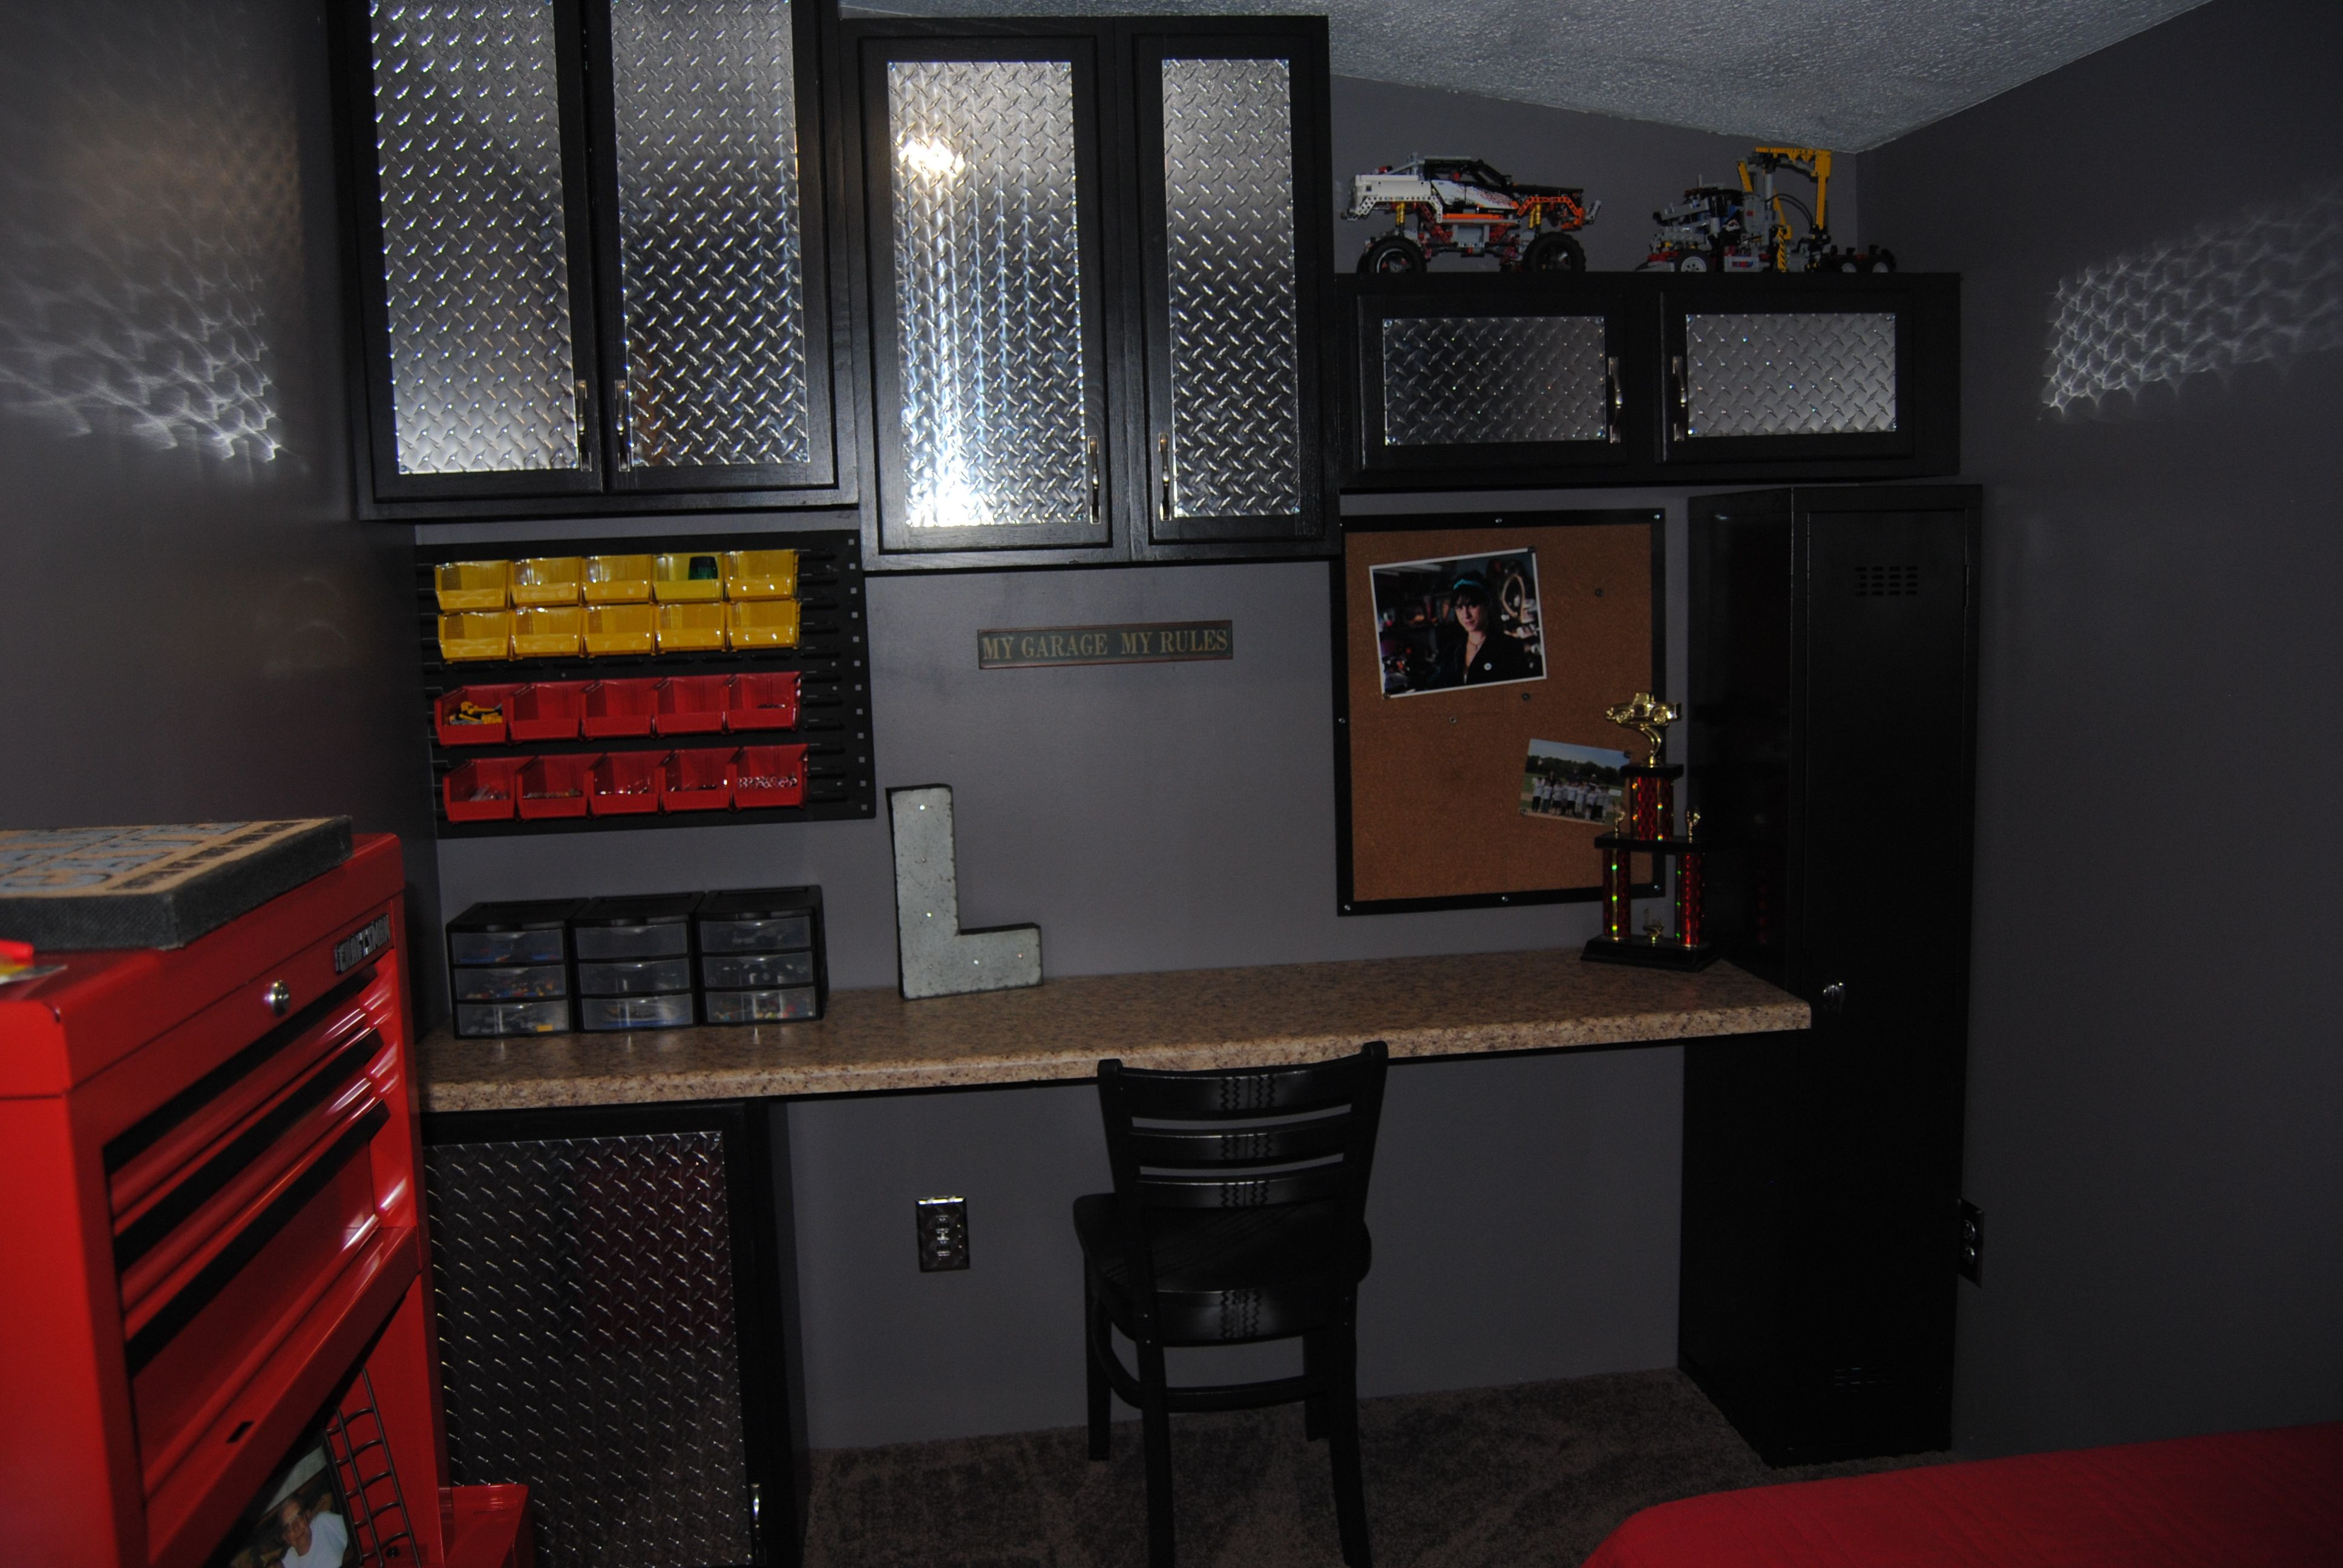 refurbished kitchen cabinets painted black with cut diamond plate